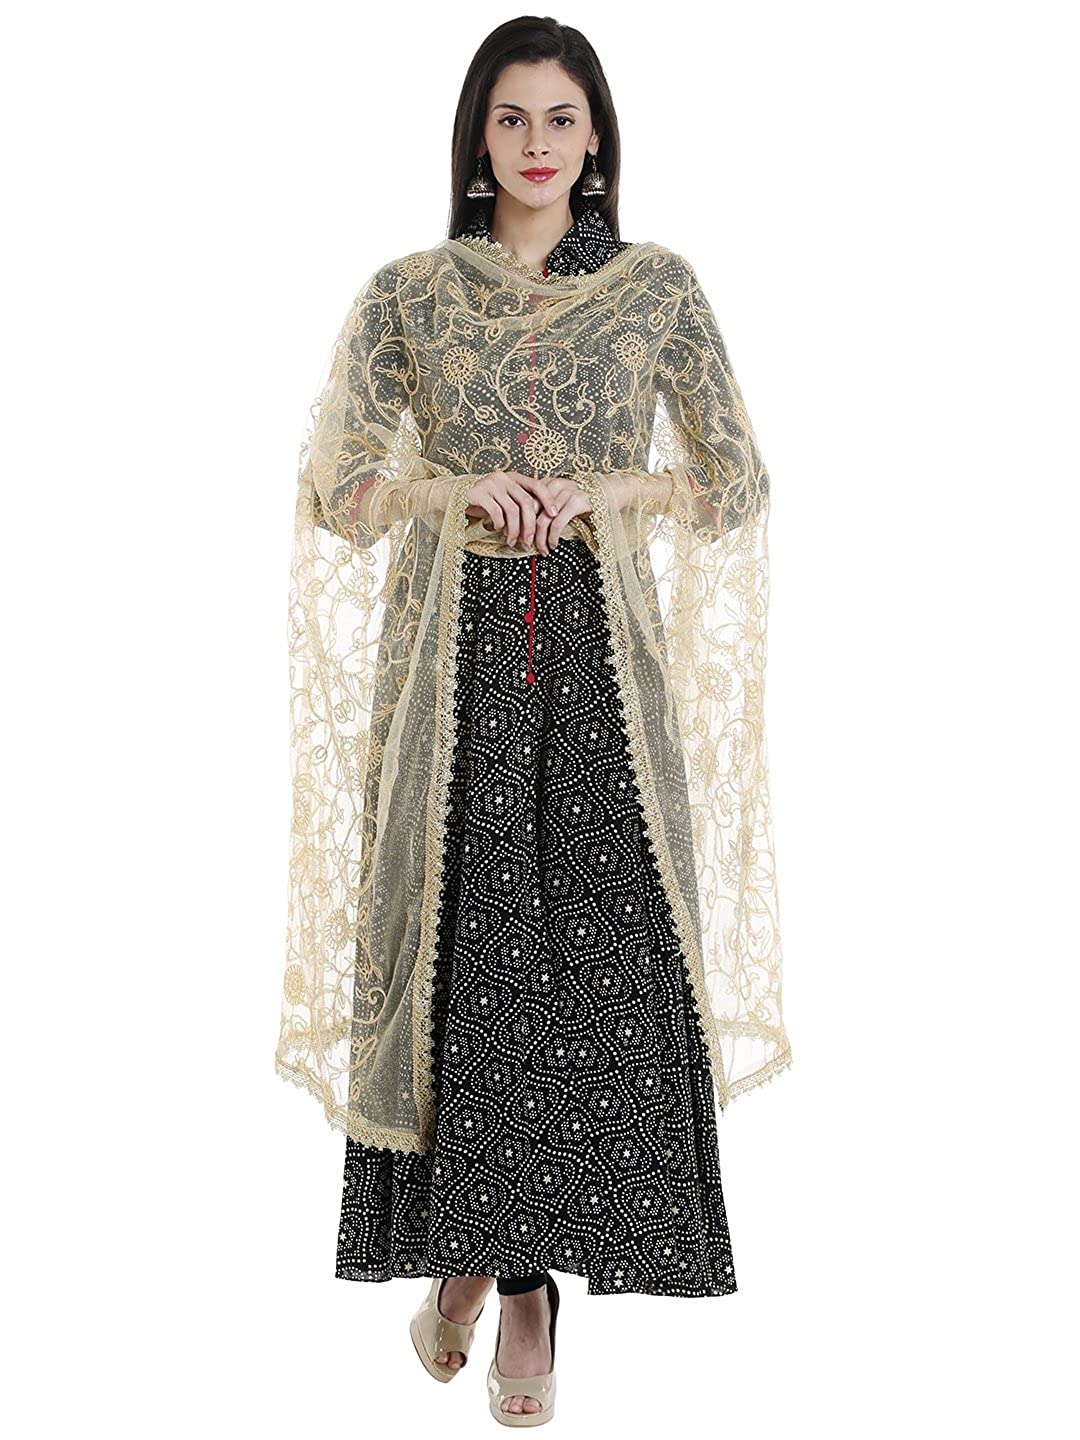 Dupatta Bazaar Women's Embroidered Gold Net Dupatta DB1359